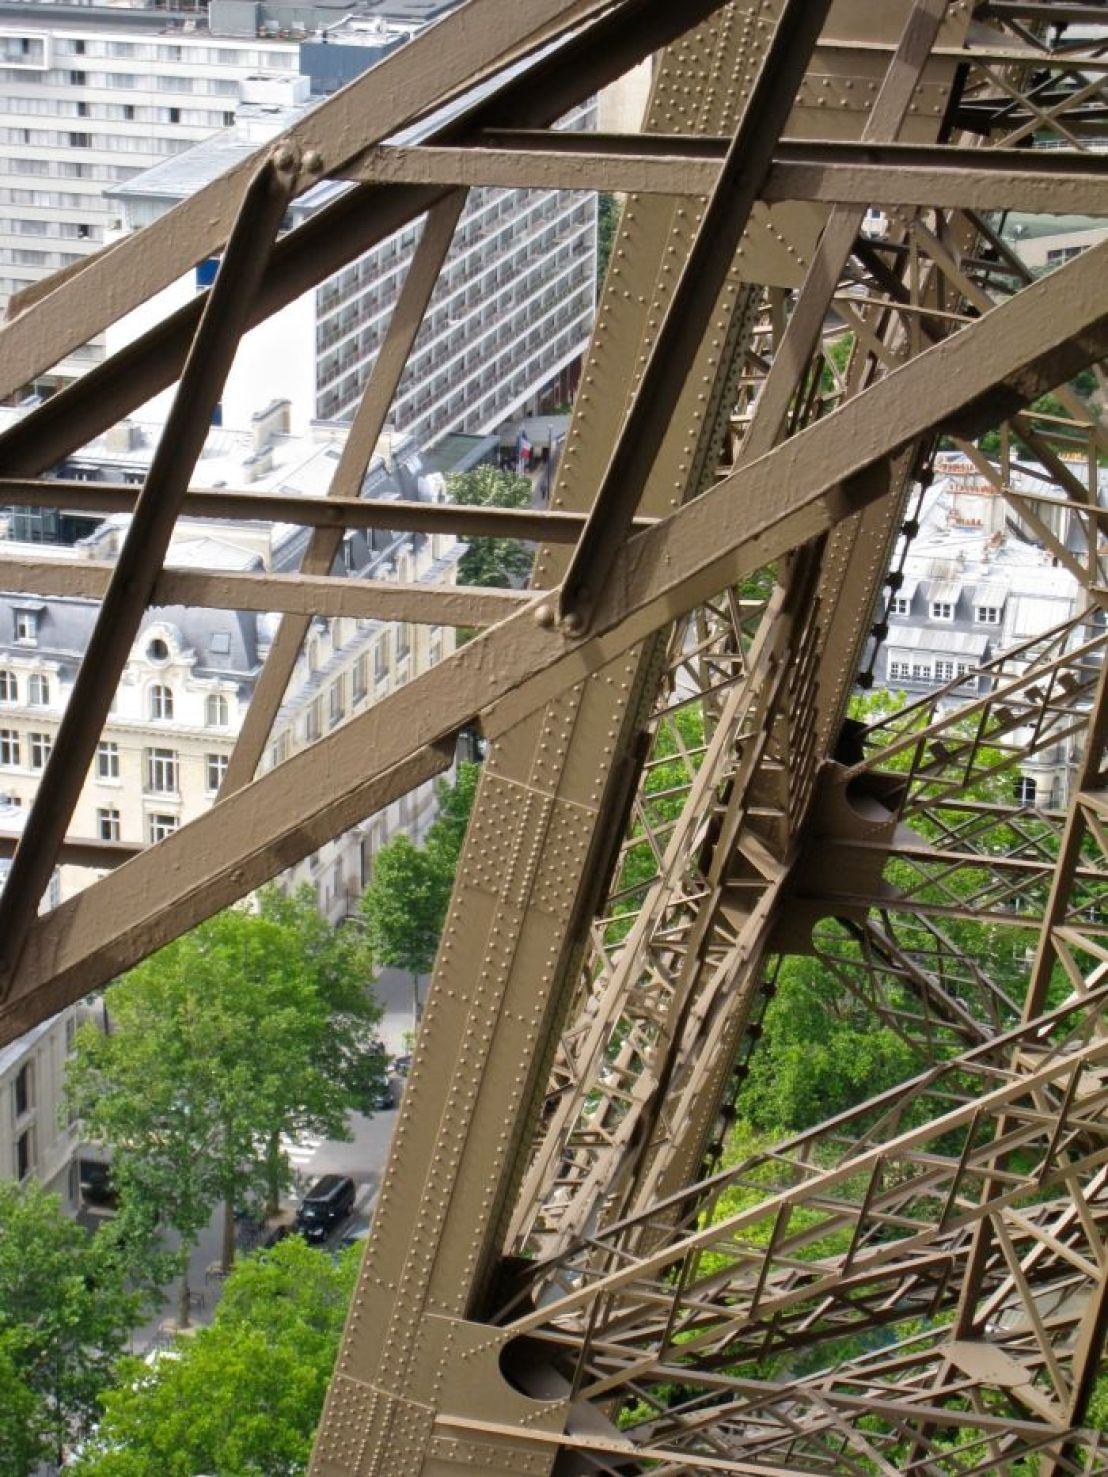 Eiffel Tower with traditional and modern buildings below